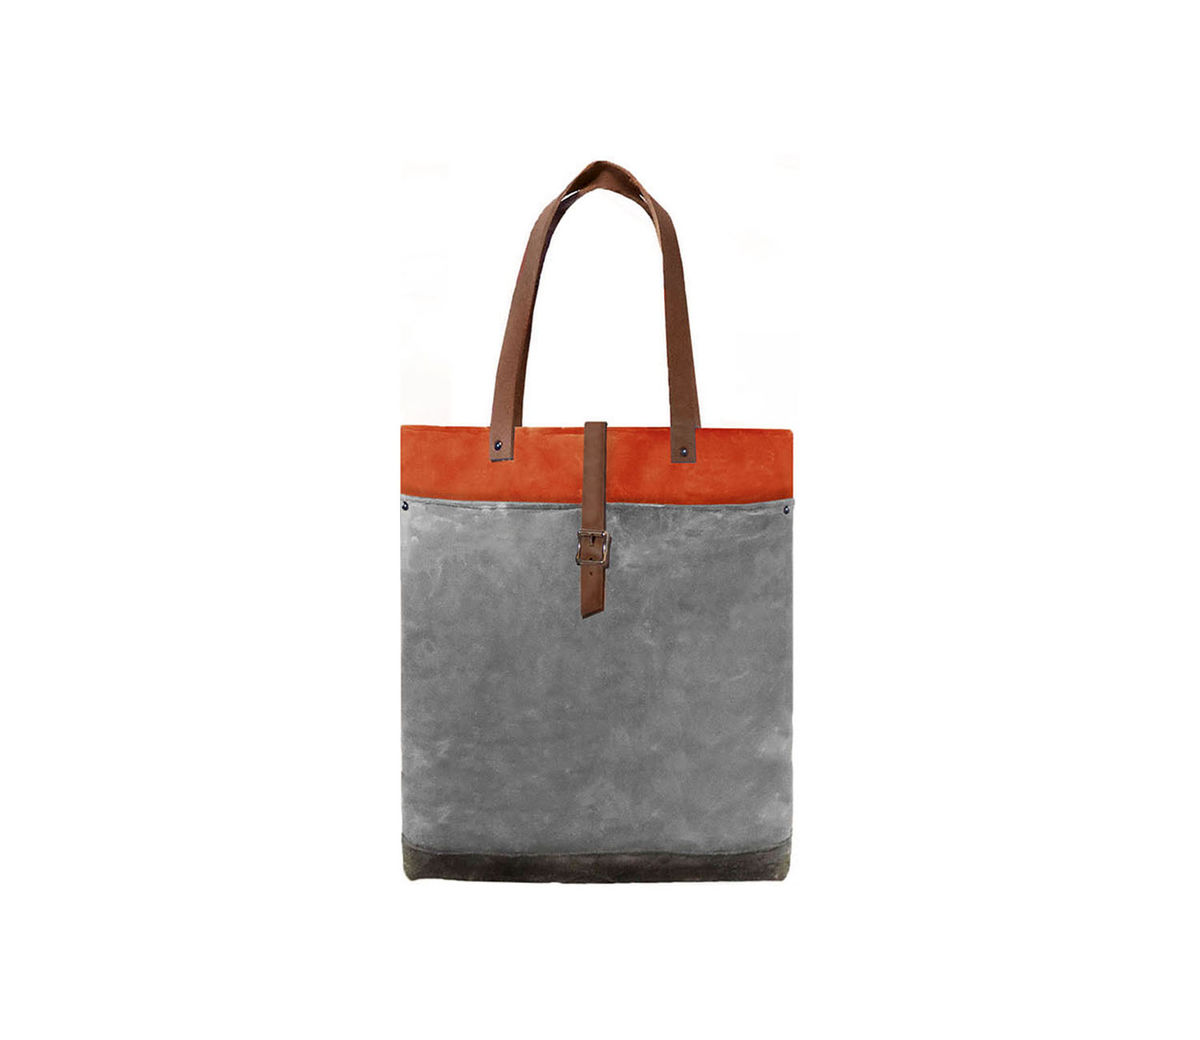 Classic Waxed Canvas Tote w/ Leather Straps in Hunter - product images  of